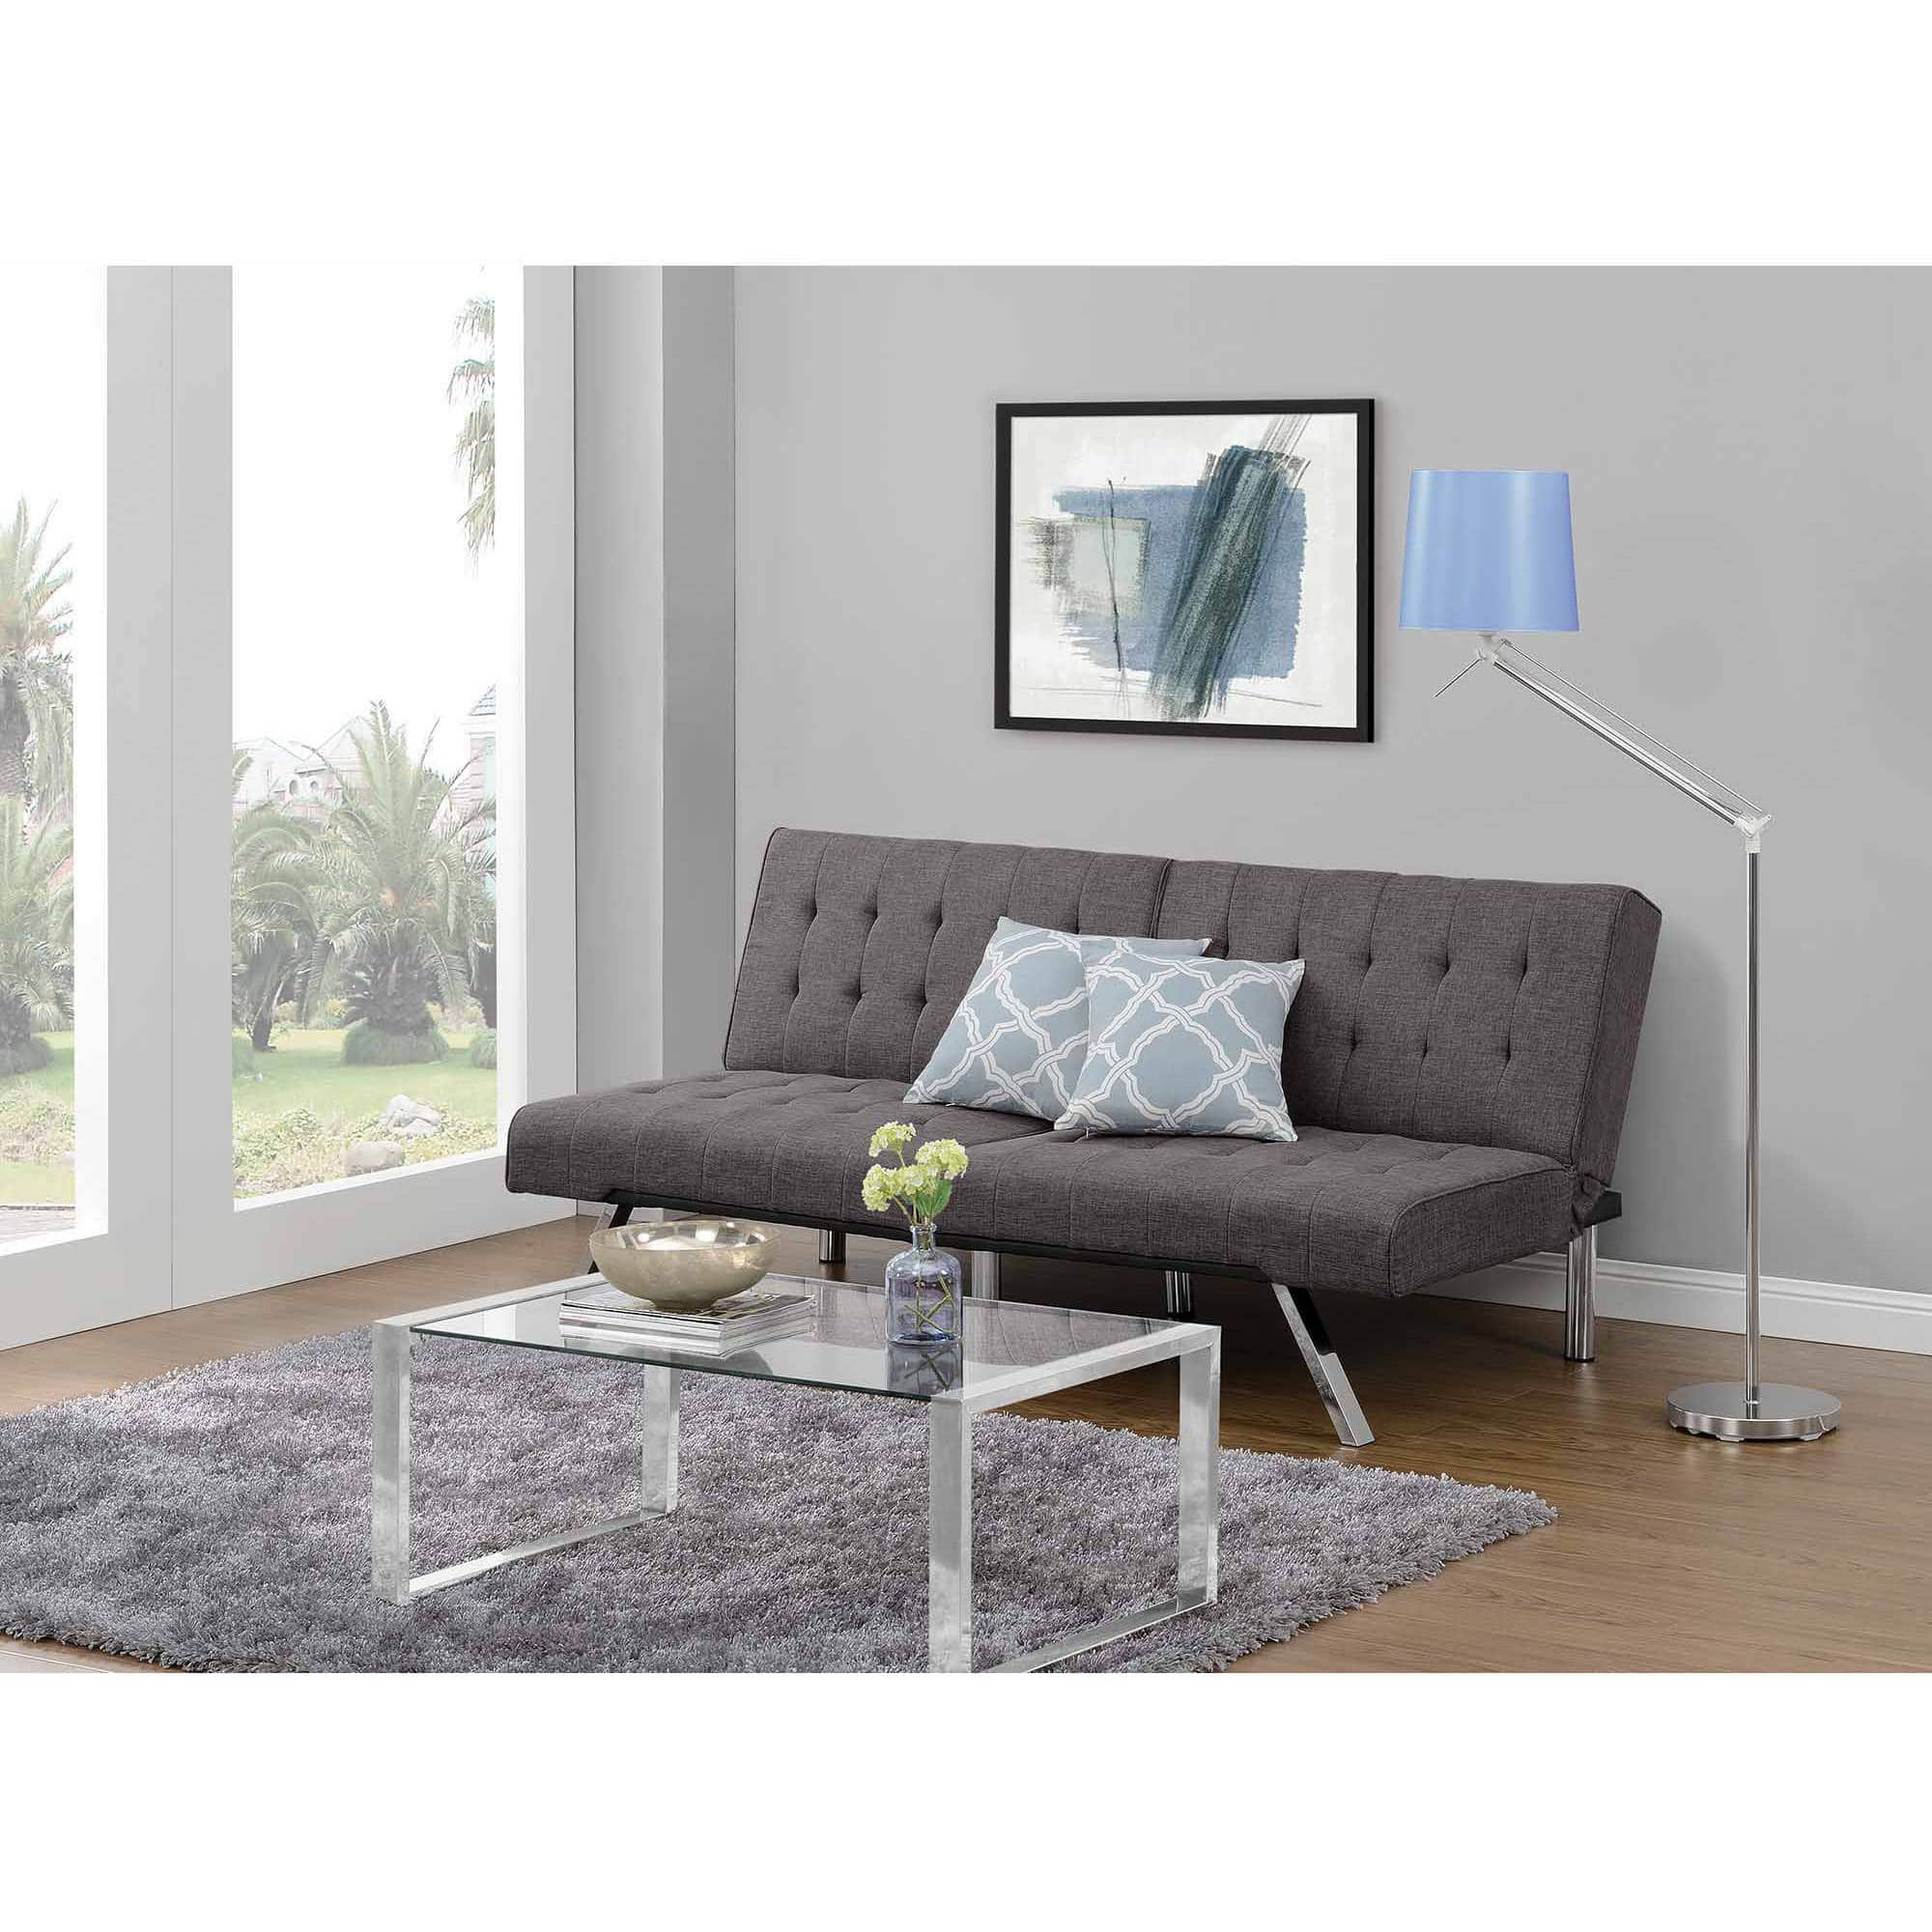 Dhp Emily Convertible Futon Sofa Couch Multiple Colors 139 00 Free Pickup